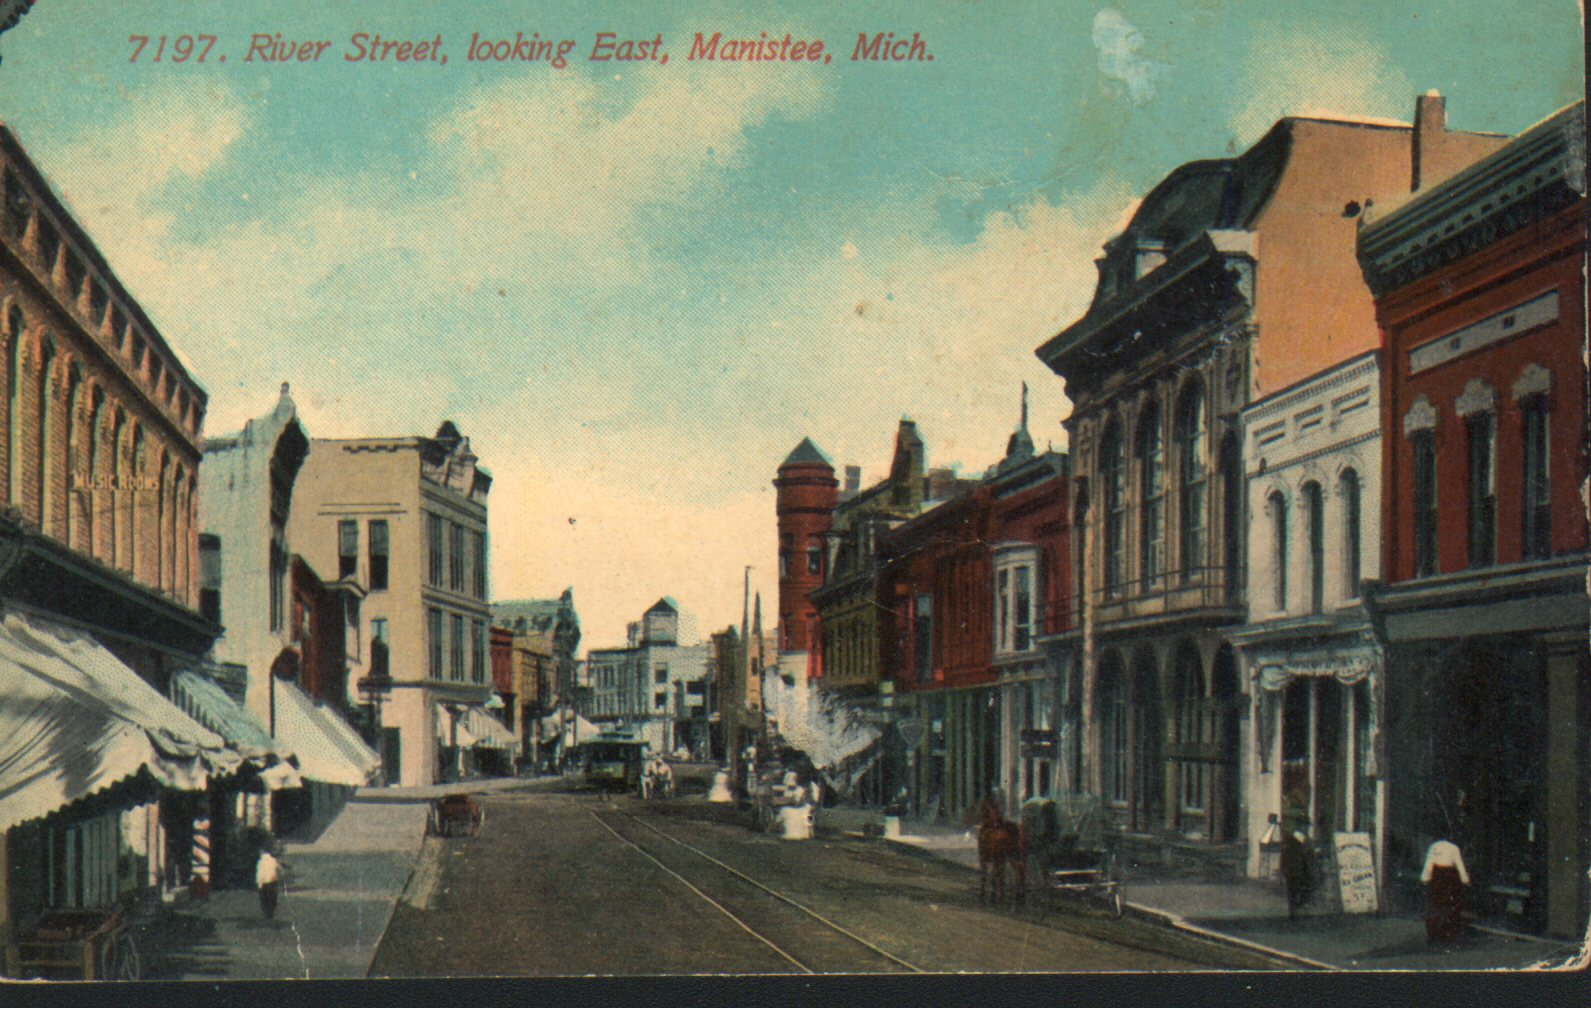 Historical colored postcard of River Street with the tower on the Ramsdell Building being a prominent feature in the background the trolley is near the intersection of River and Maple Street and awnings are pulled down to shade the sun